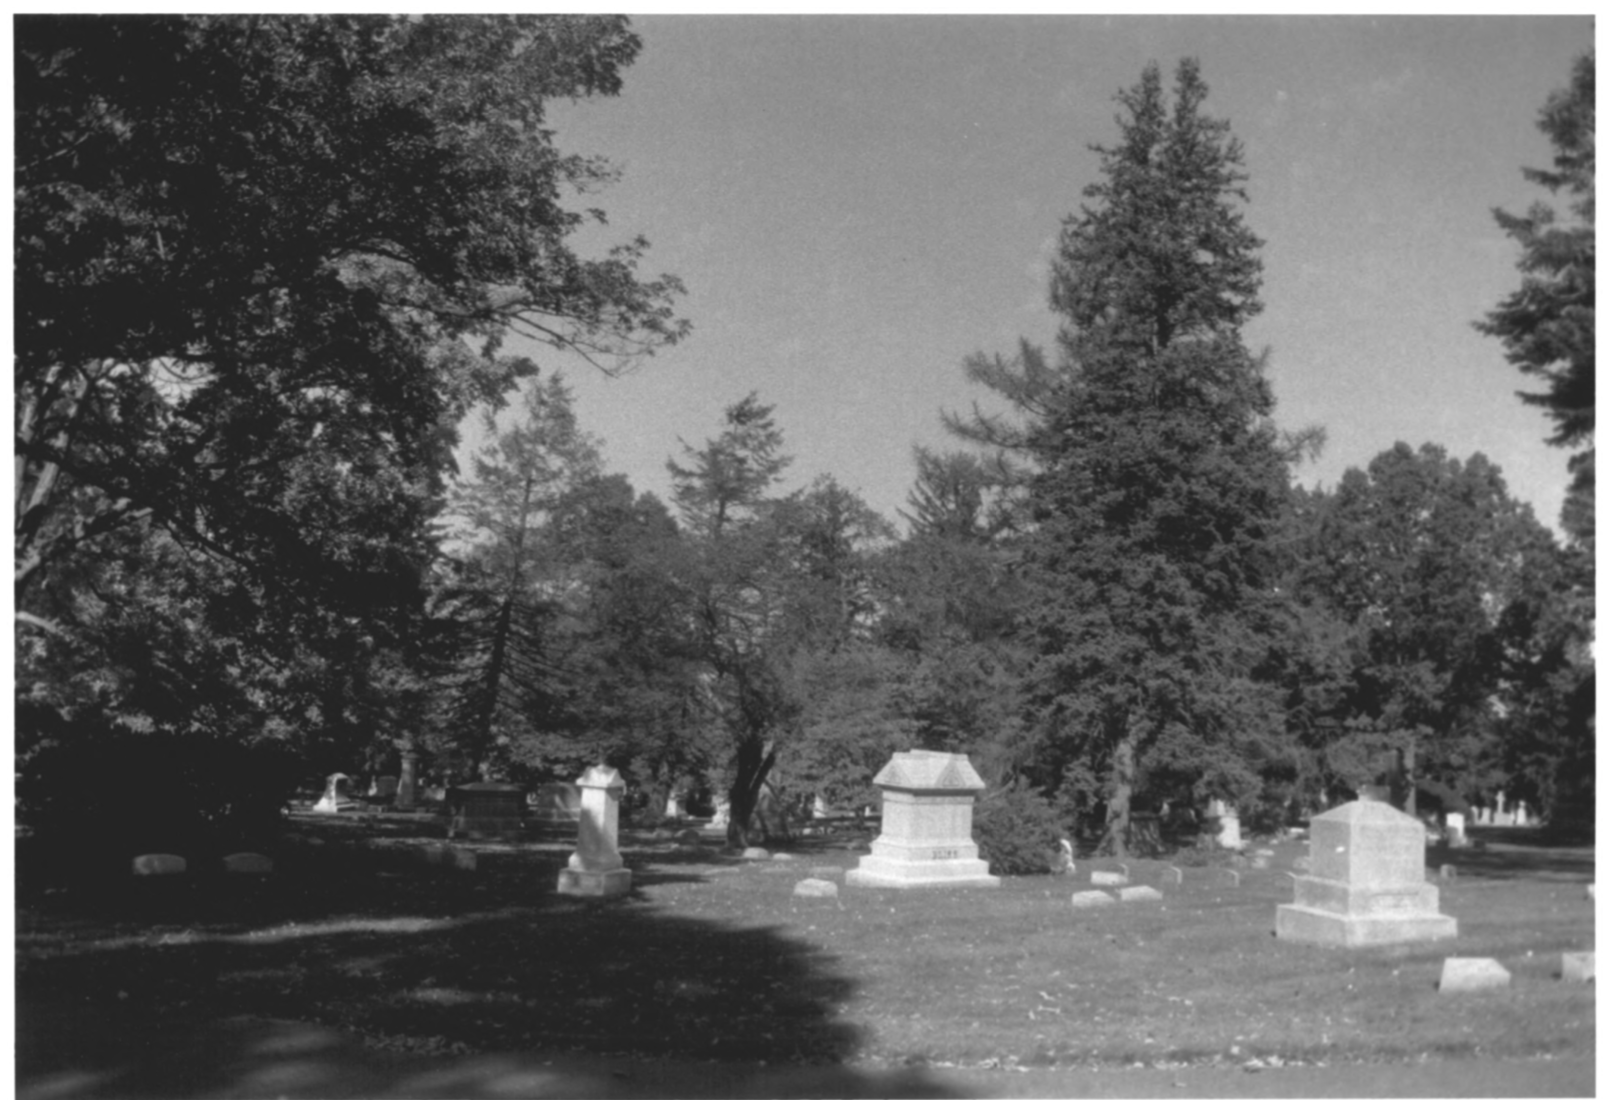 1997 NPS Photo Record of Cedar Hill Cemetary #16